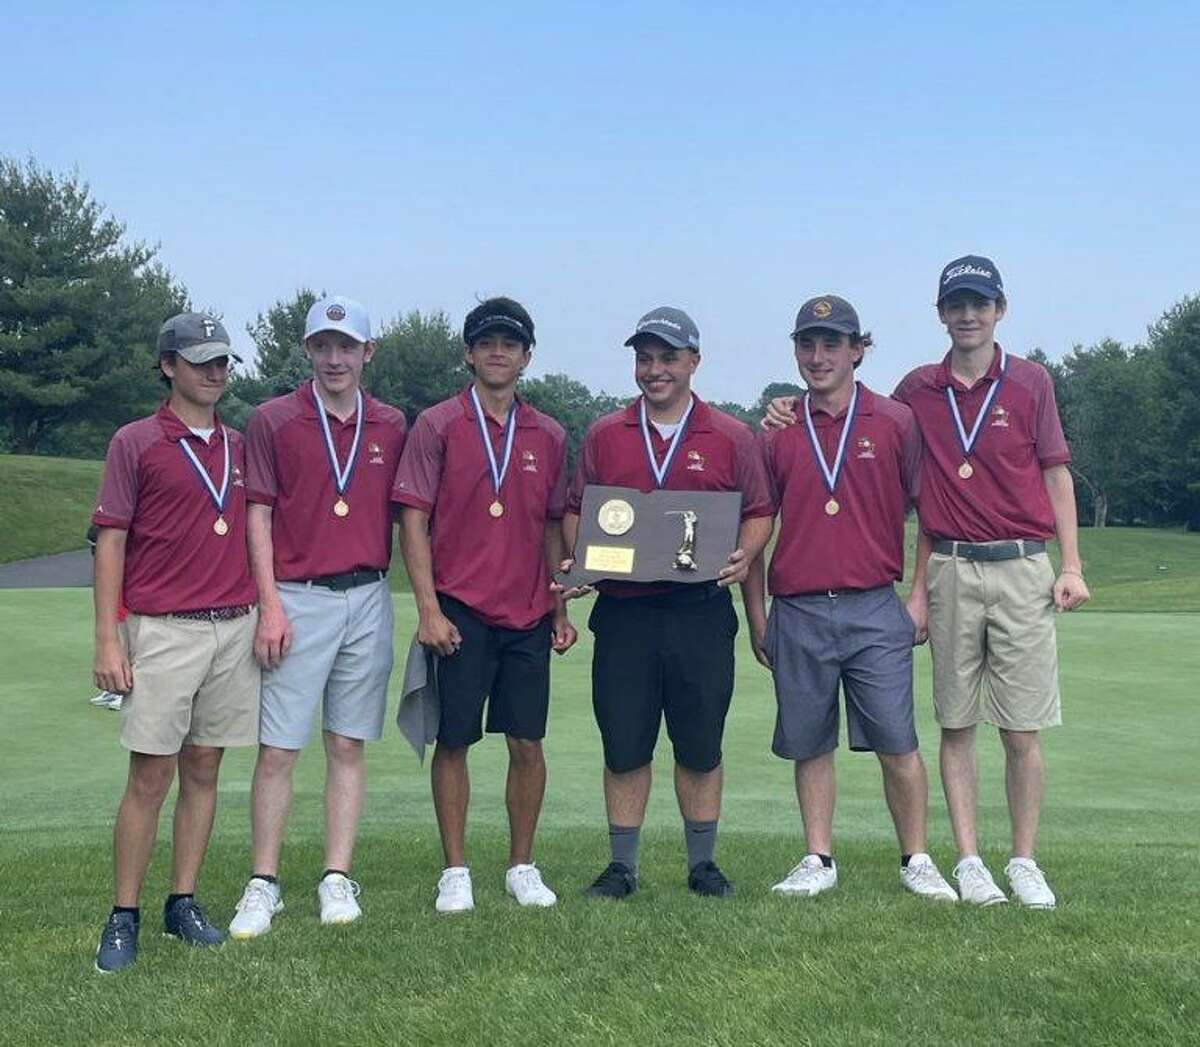 St. Joseph golf team members Andrew Flynn, Colin Firda, Luke Fortin, Billy Lesko, Anthony Jacozzi and Robbie Sluga stand with the CIAC Division III championship plaque.